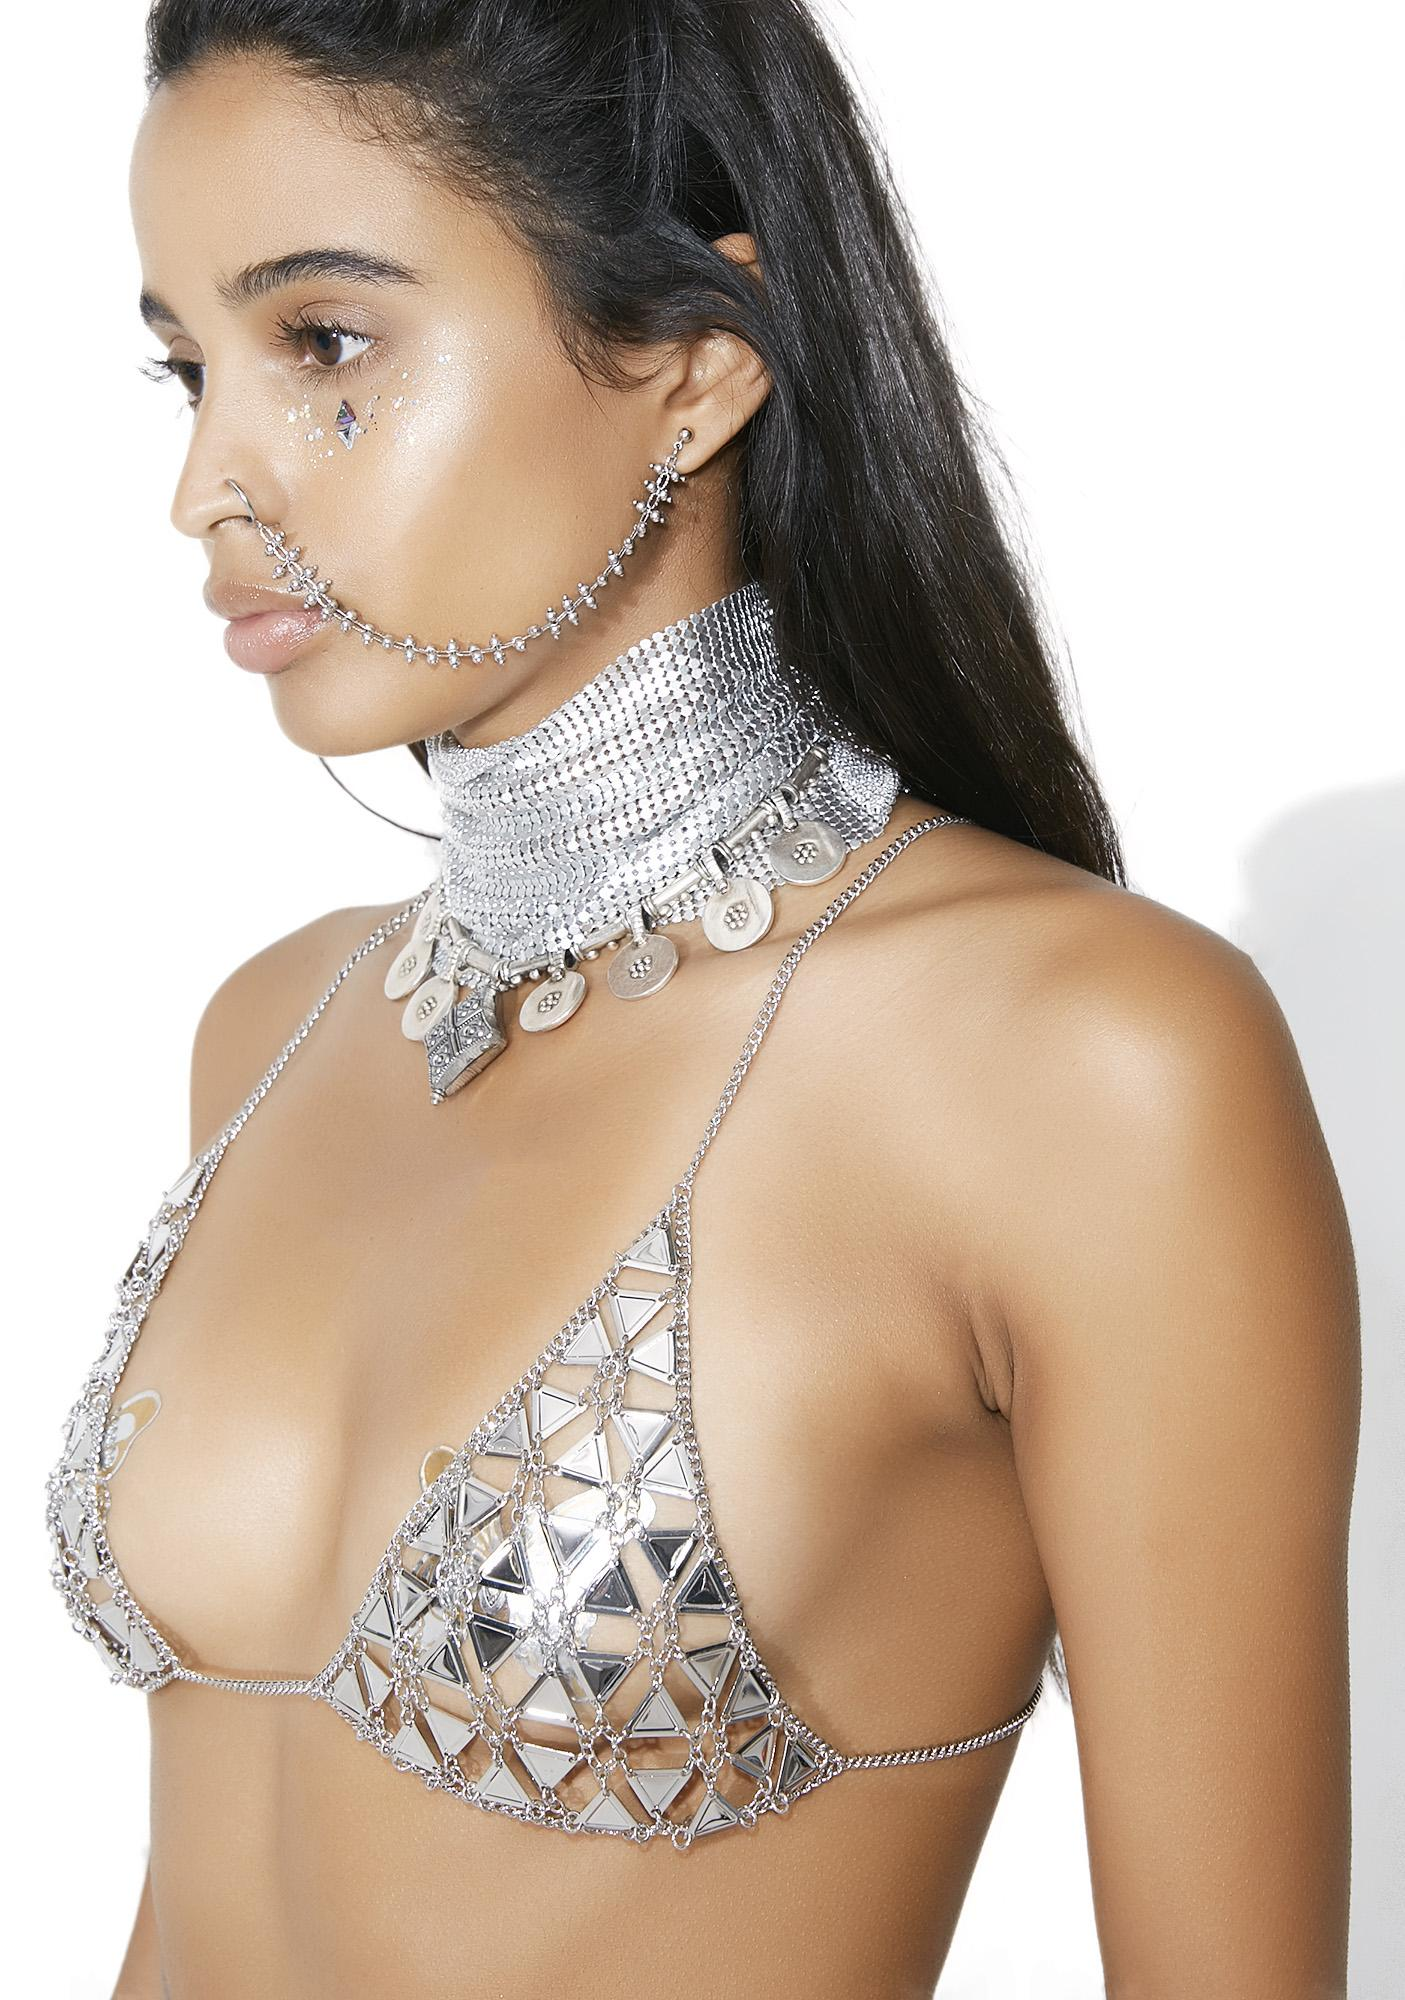 Princess Organa Chain Bra